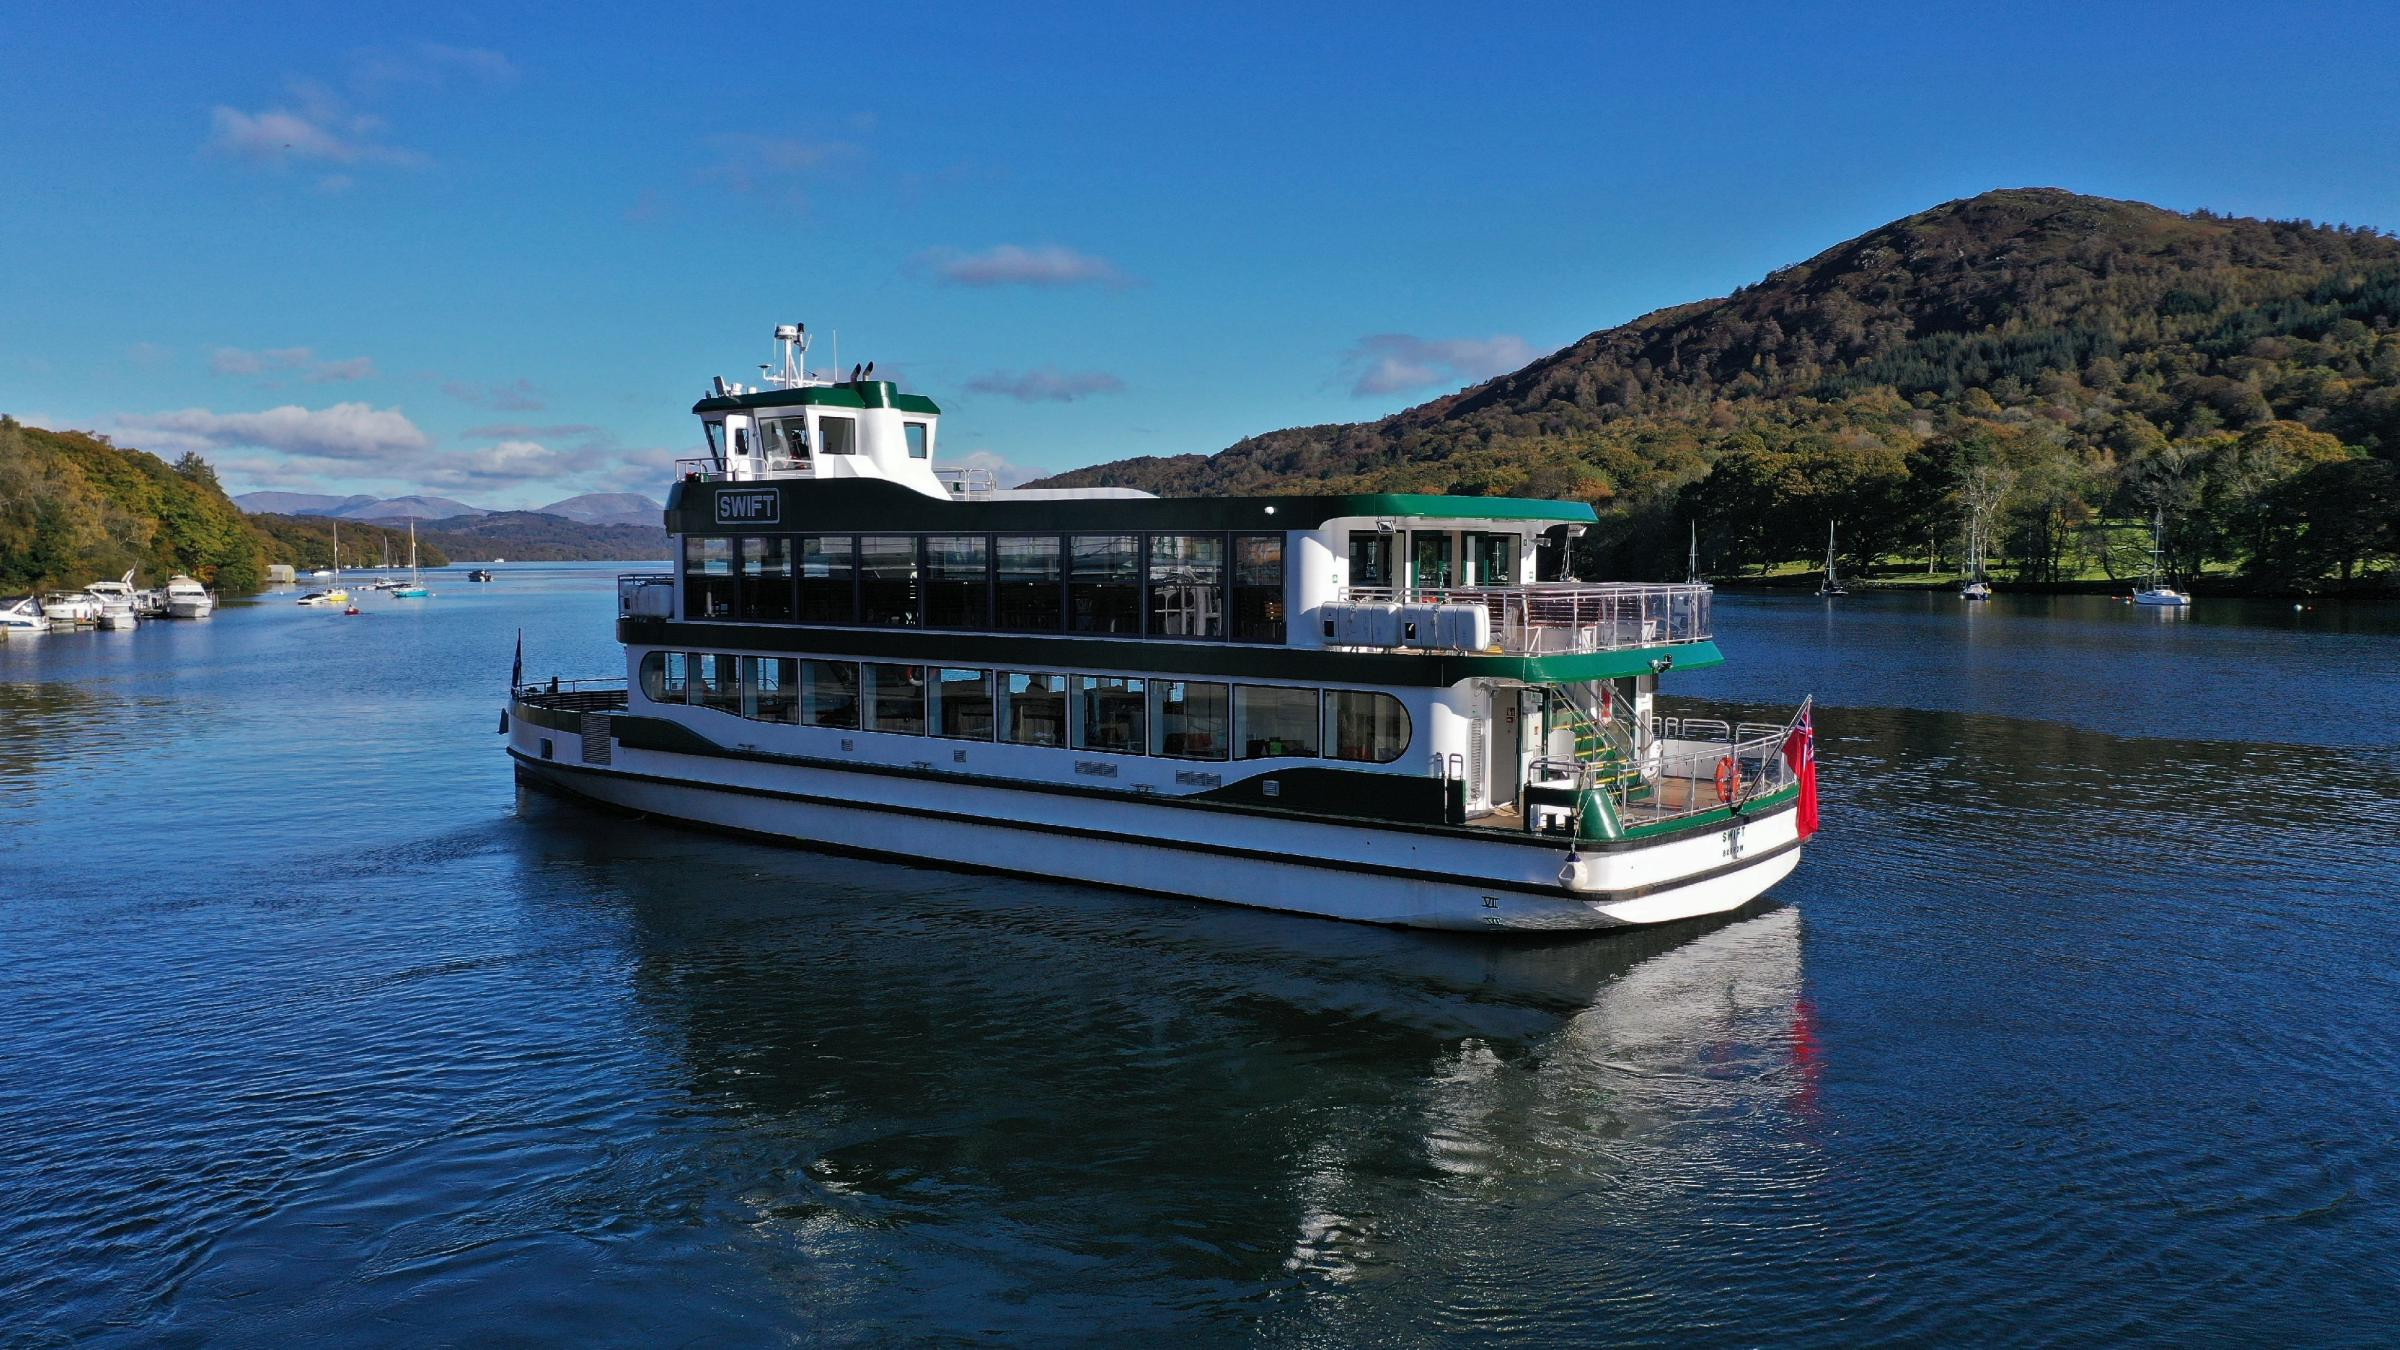 Stunning new ship sets sail on her maiden voyage in Cumbria